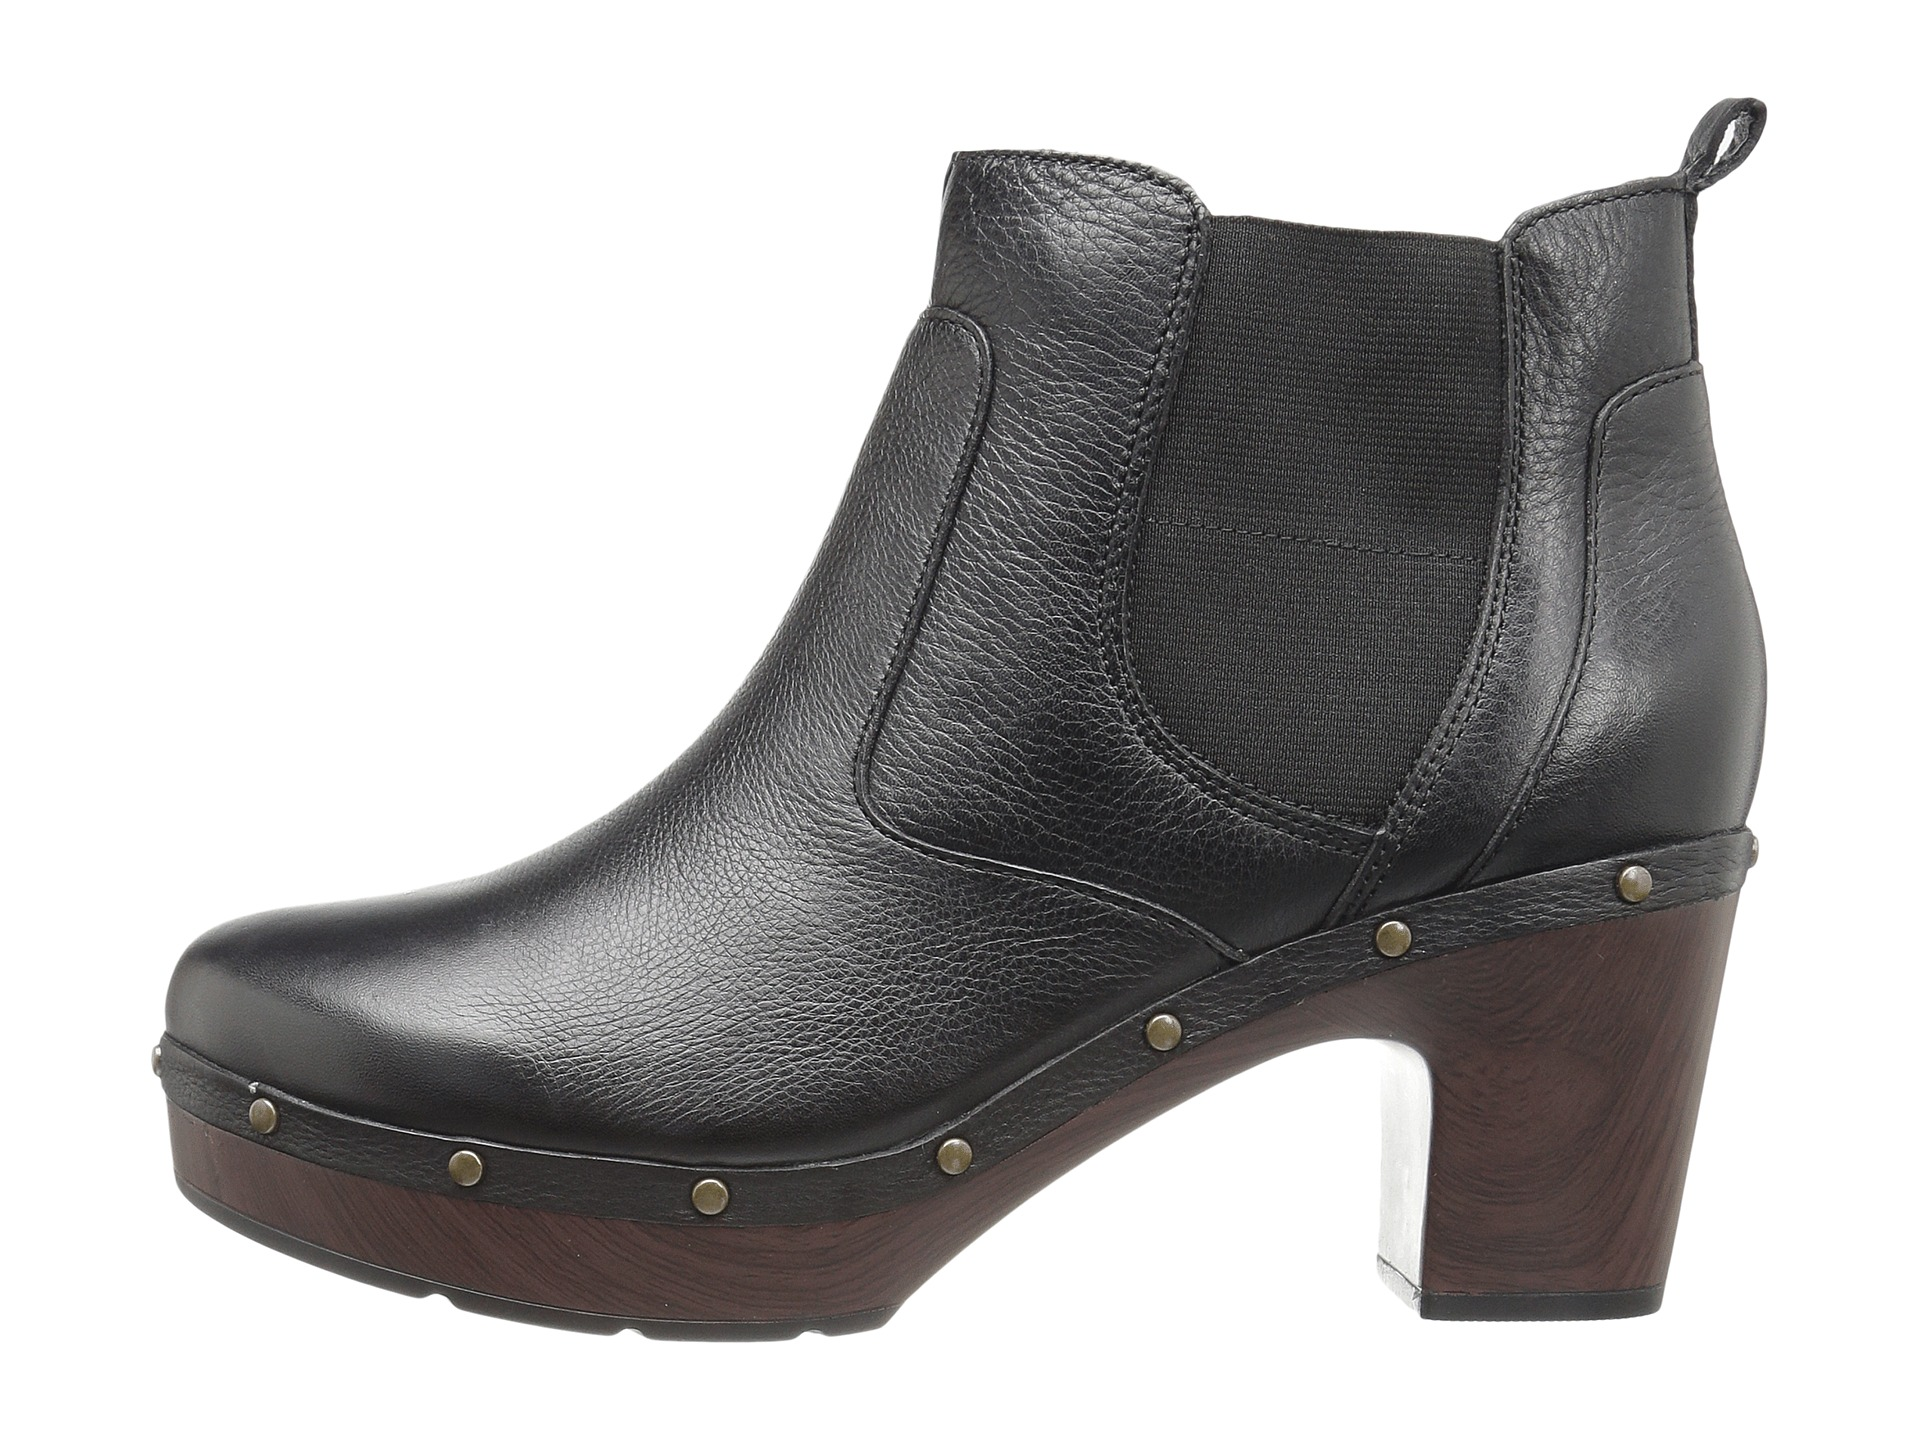 Clarks Ledella Star - Zappos.com Free Shipping BOTH Ways